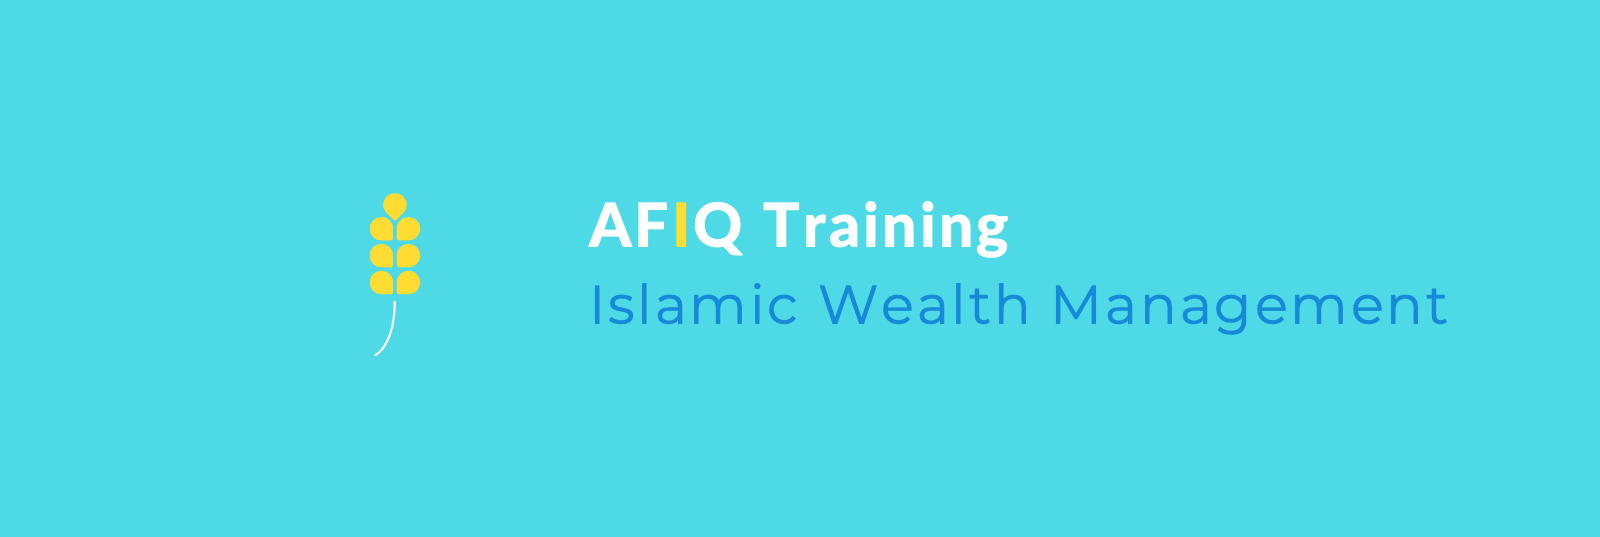 AFIQ Training header image